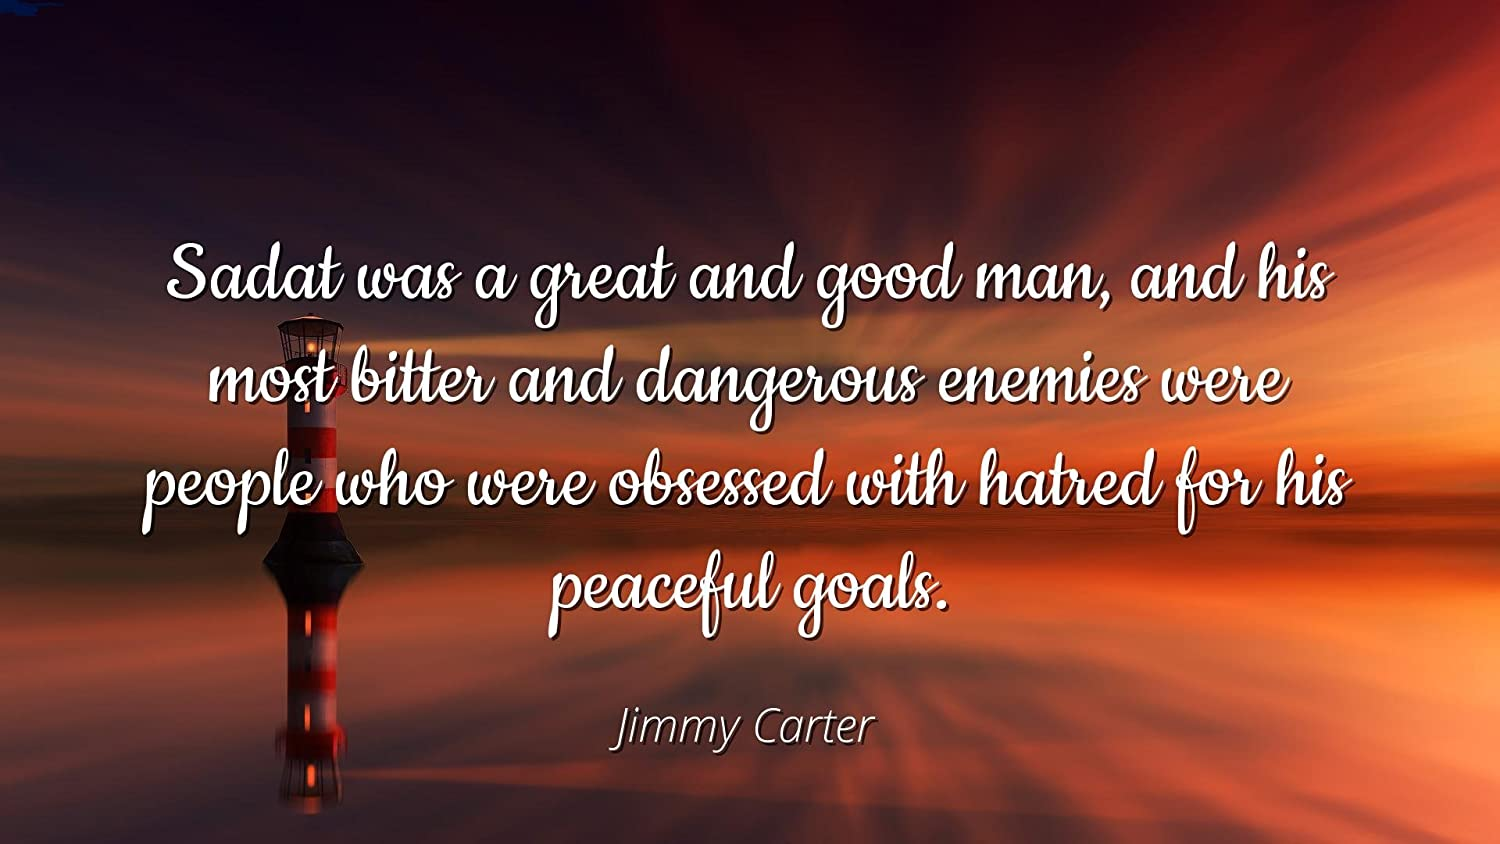 Amazon.com: Jimmy Carter - Famous Quotes Laminated POSTER ...